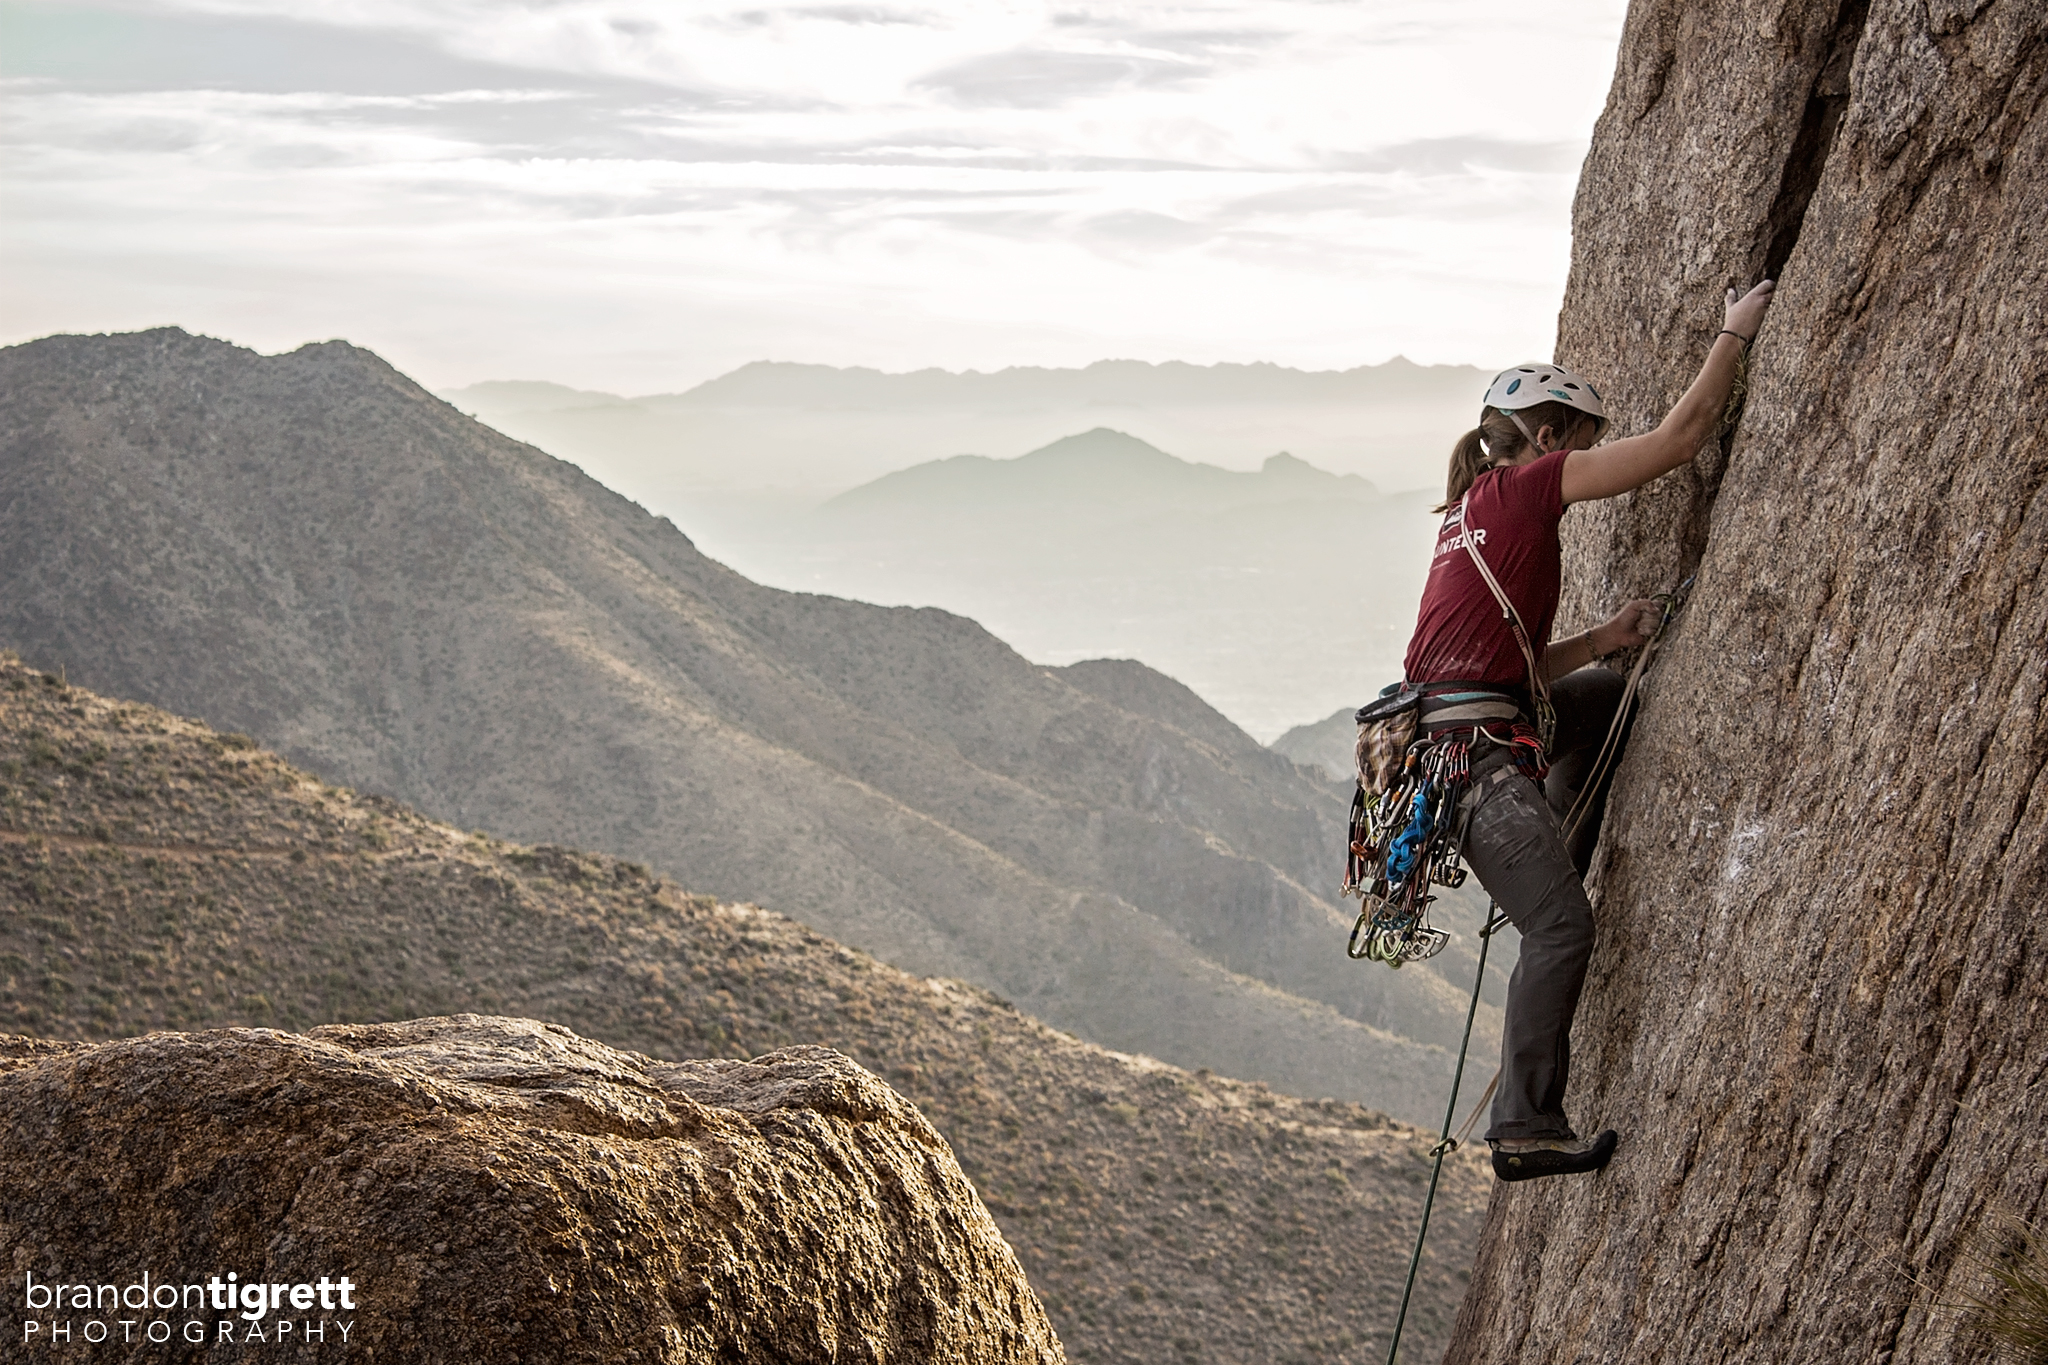 2013_Brandon-Tigrett_Toms_Thumb_Trail_Climbers_Retouched_Facebook.jpg